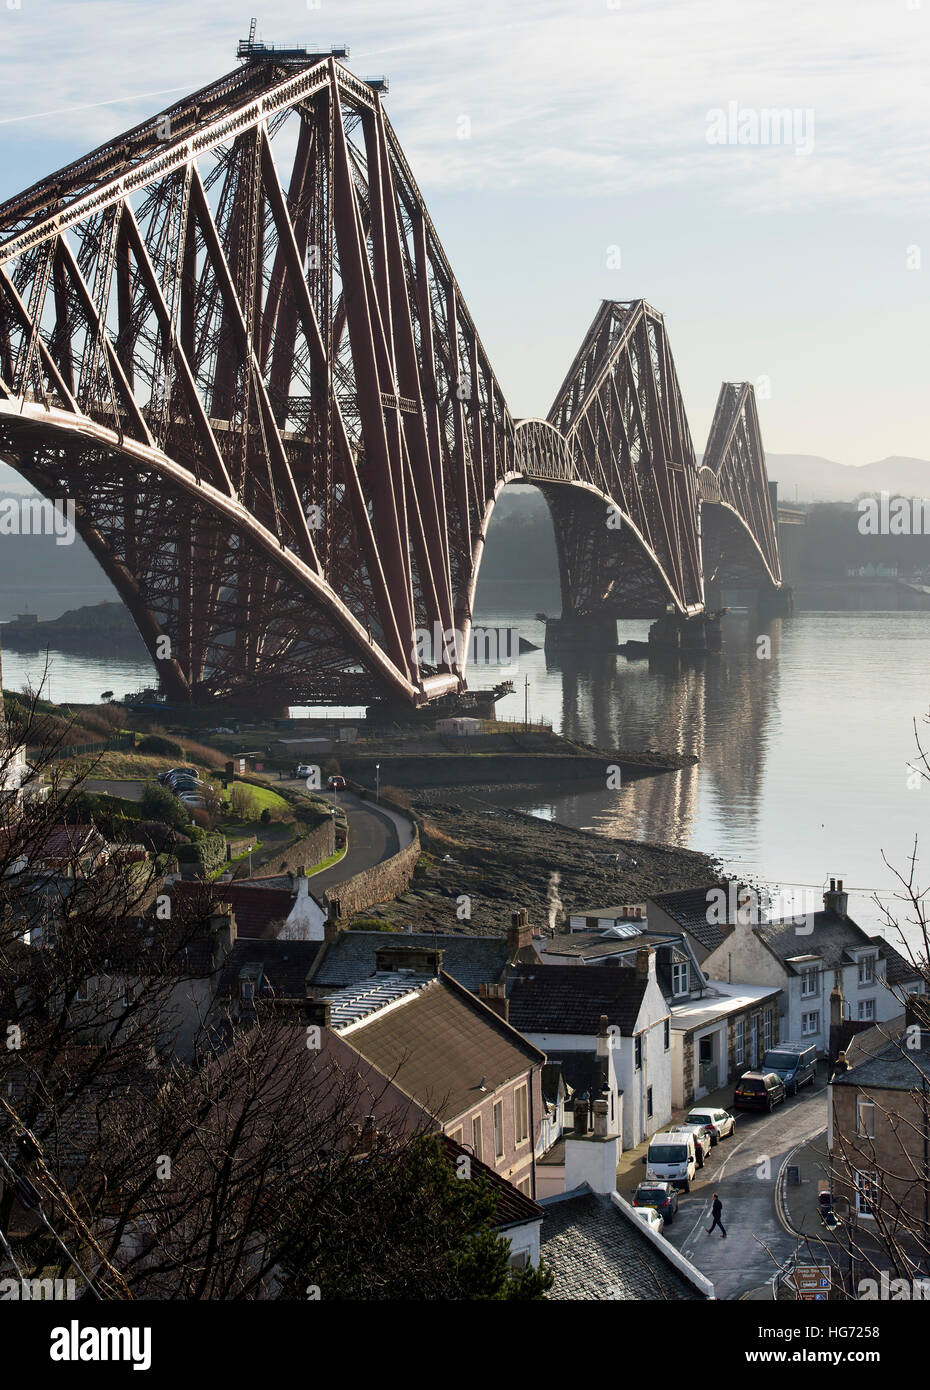 The Forth Rail Bridge viewed from the village of North Queensferry looking south over the Firth of Forth. Stock Photo